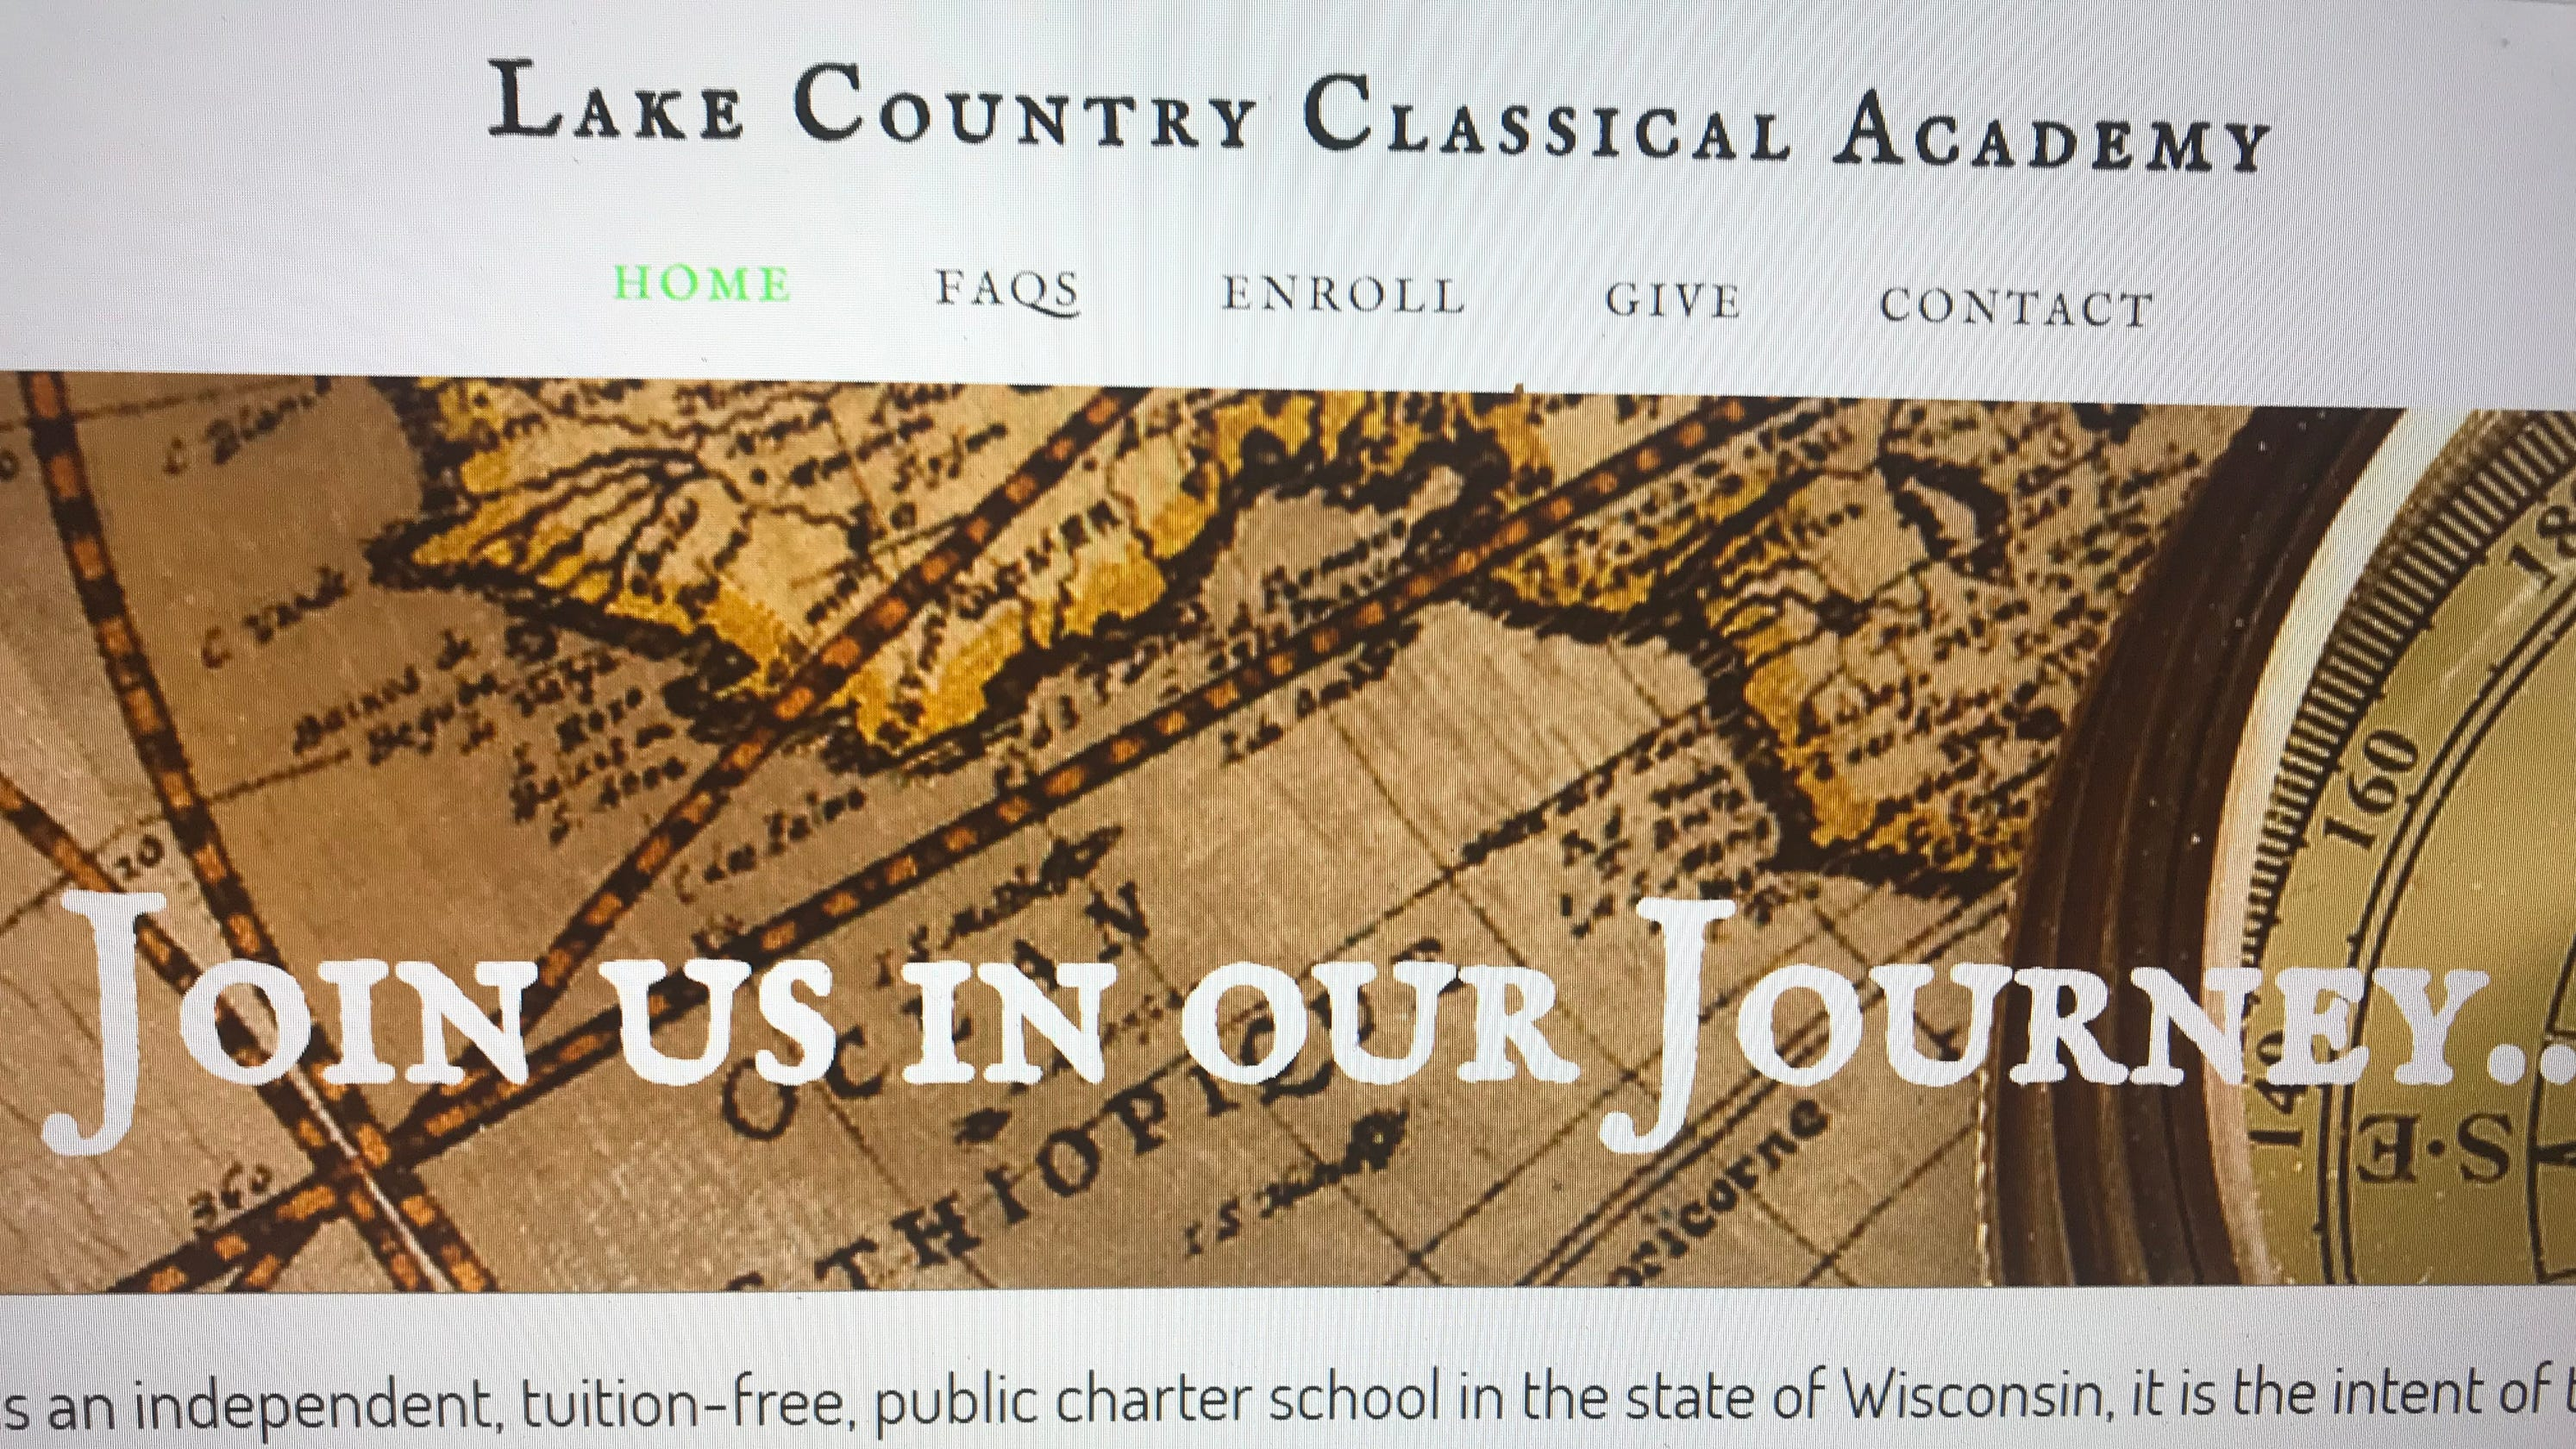 Proposed Lake Country Classical Academy could be authorized by August 2576bbfb8